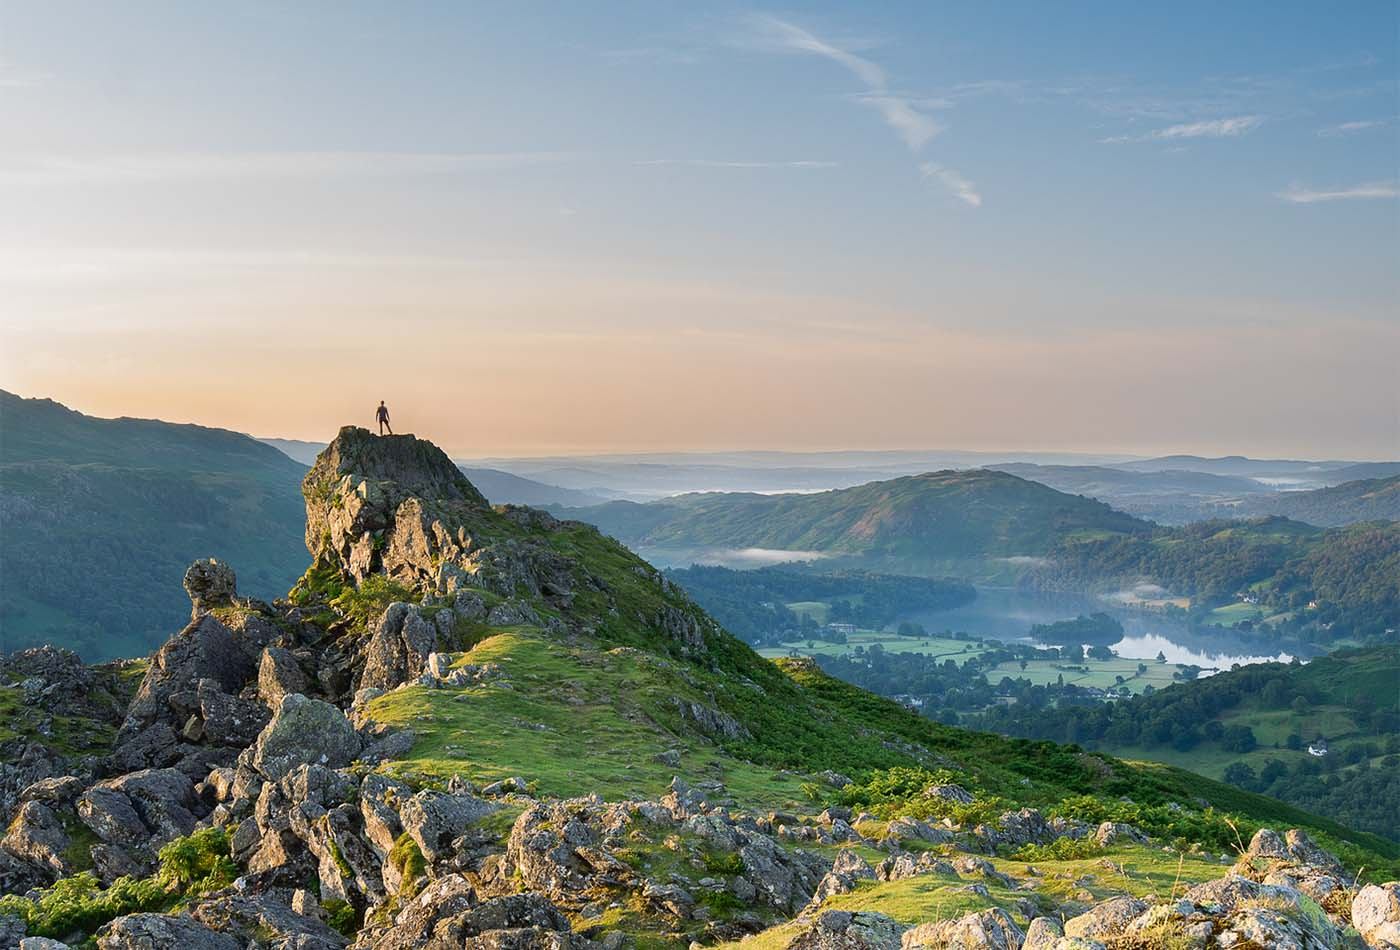 A walker alone at the summit of Helm Crag, overlooking Grasmere as the sun rises.